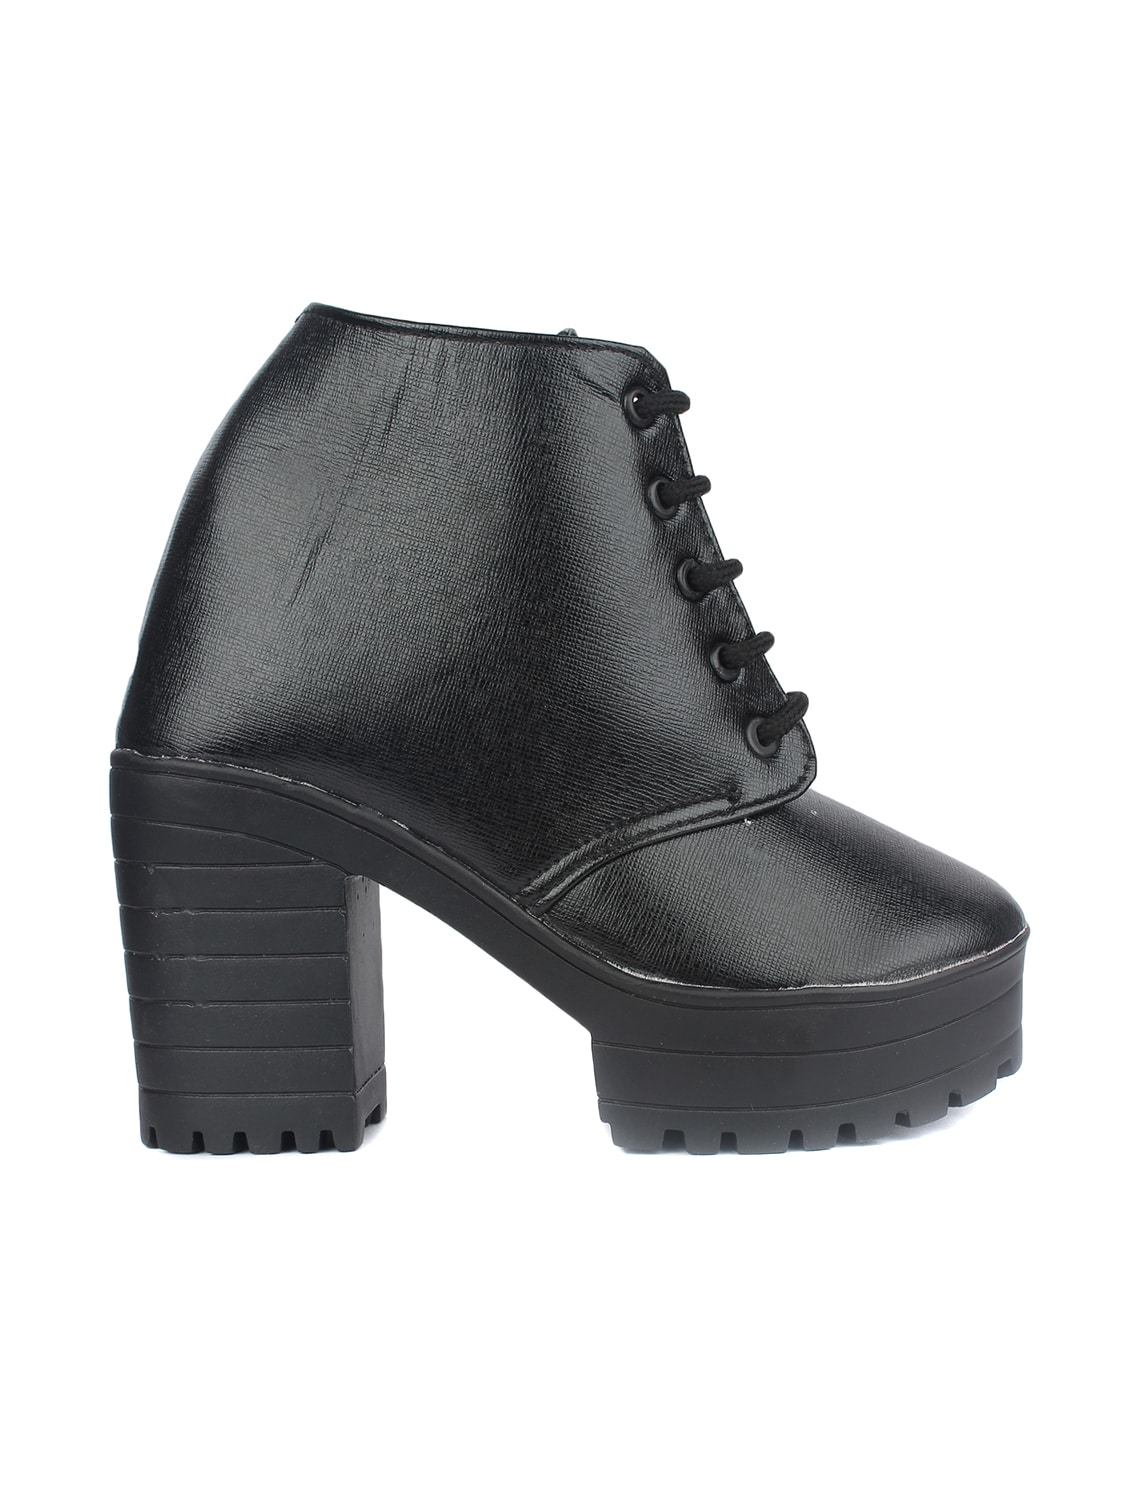 9bd03afa6ade Buy Black Lace-up Ankle Boot for Women from Orysta for ₹728 at 27% off